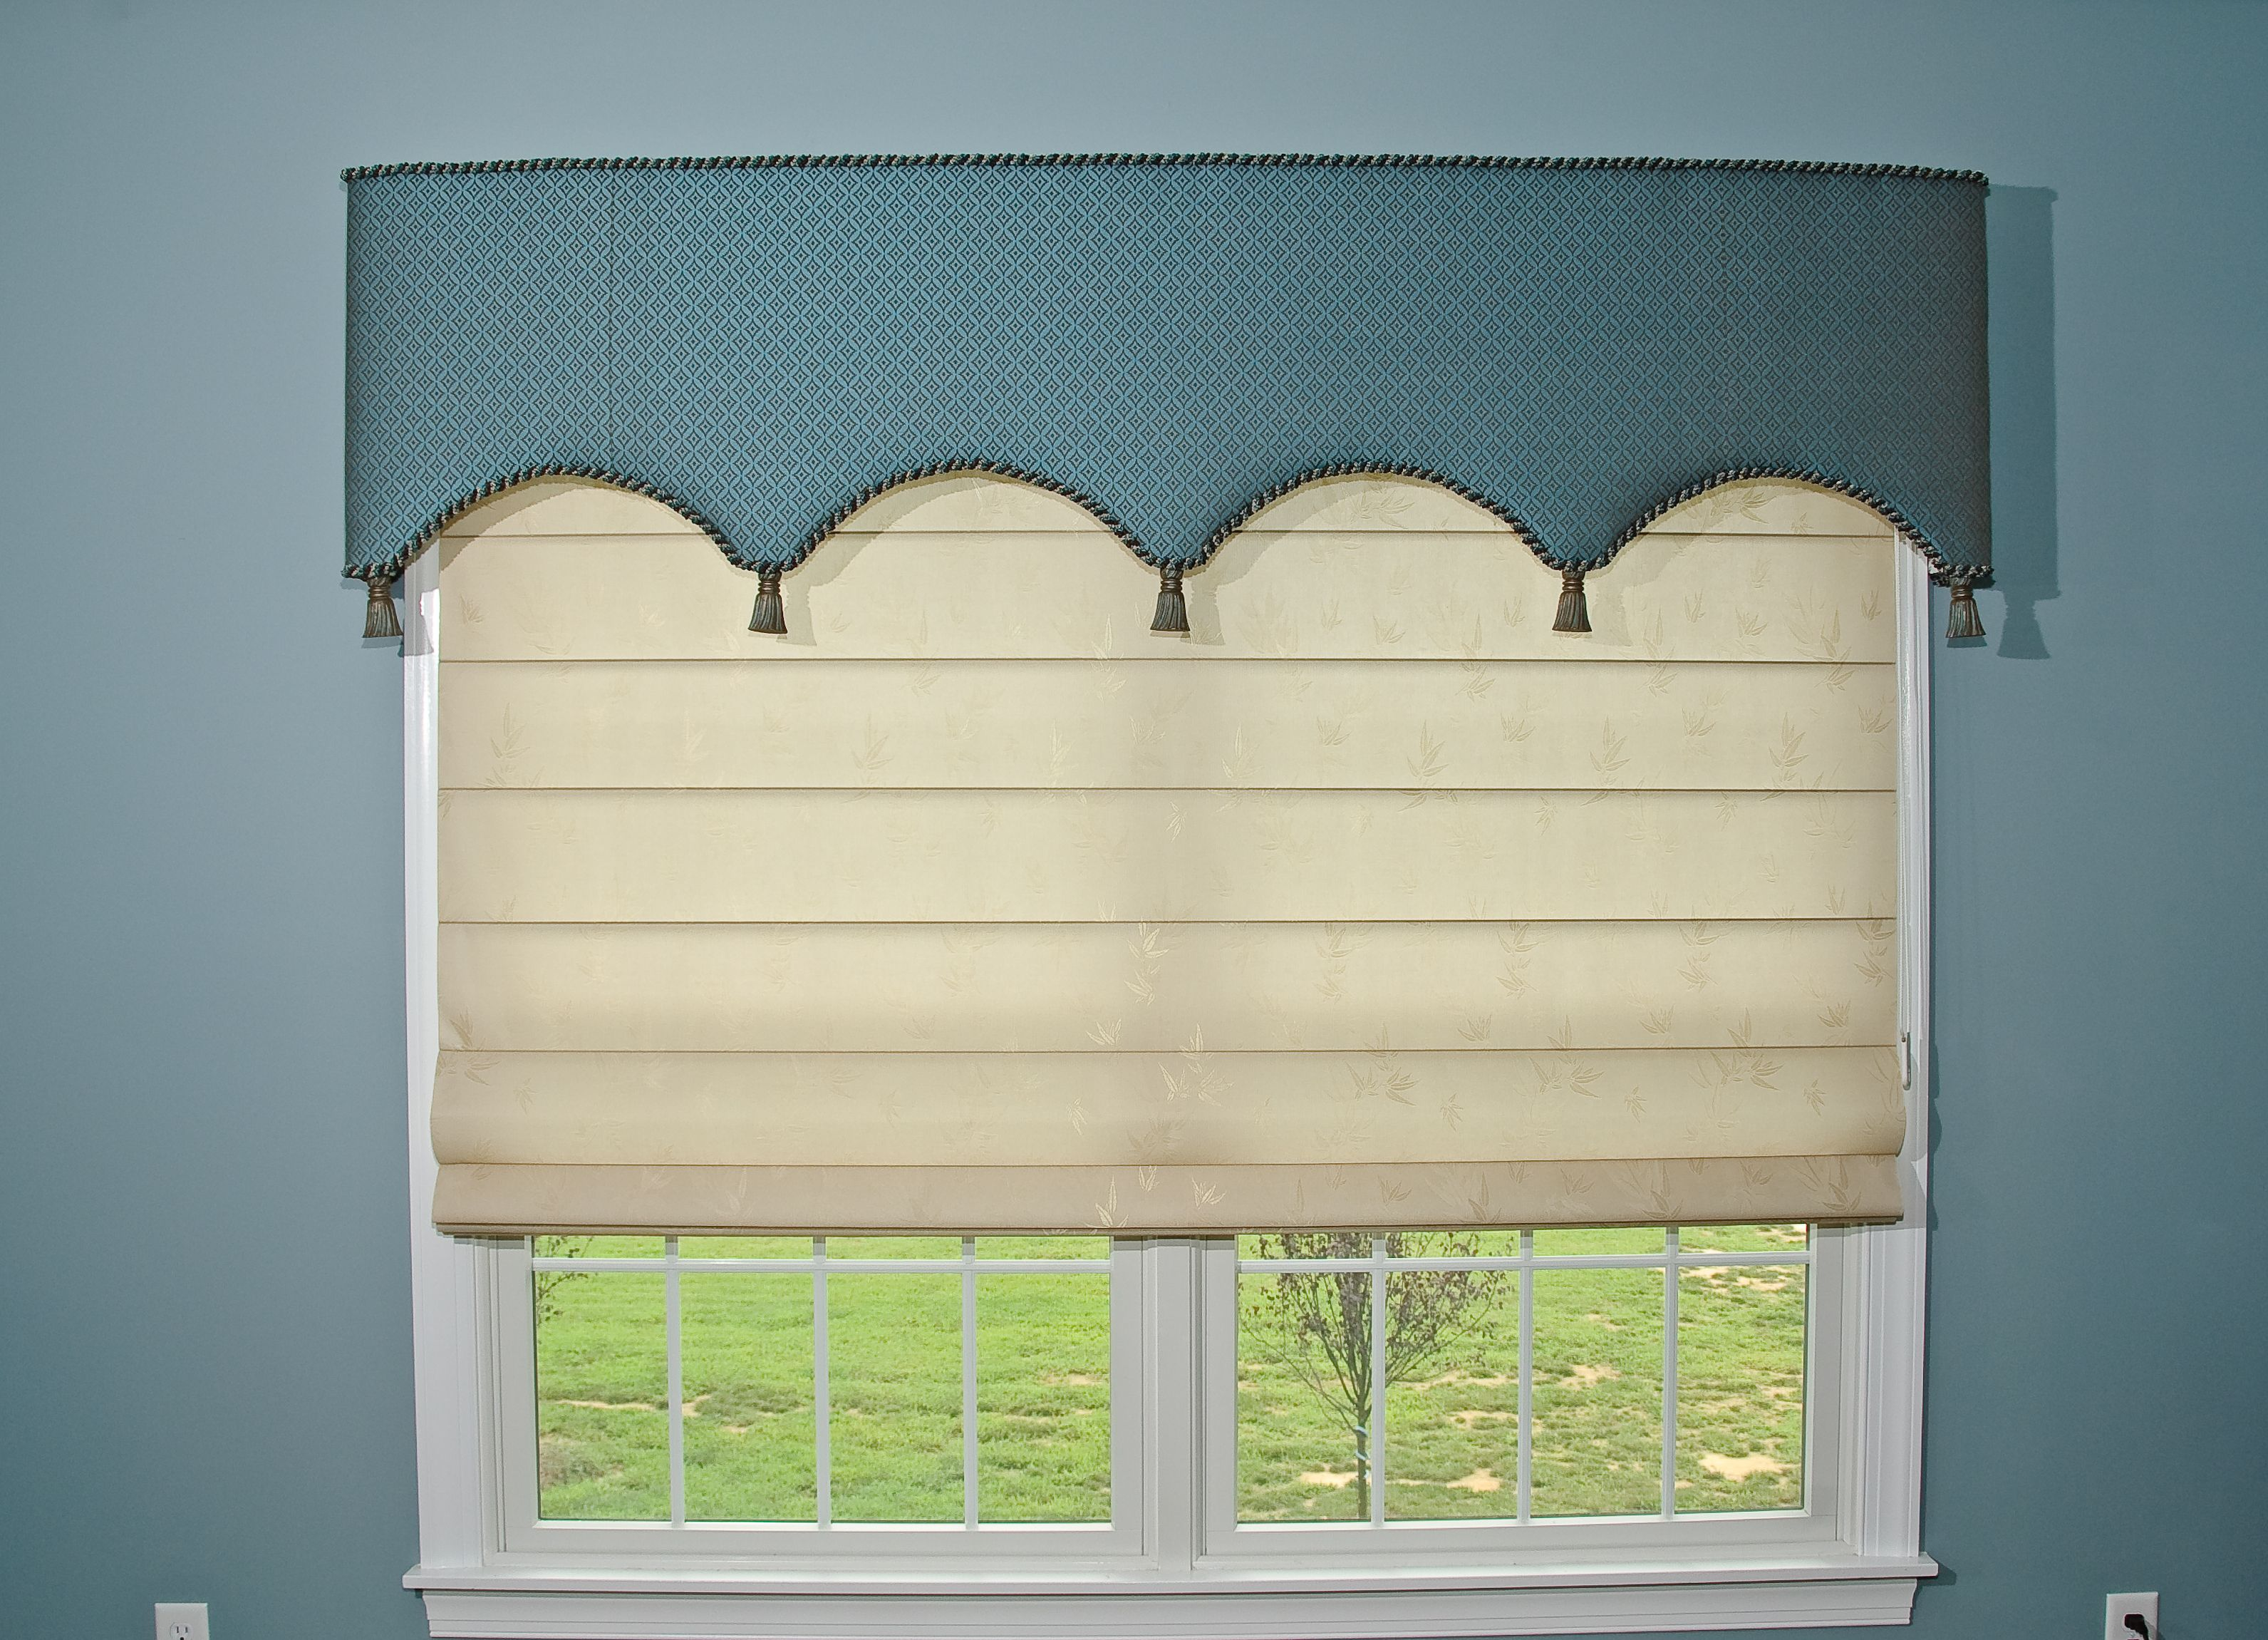 Arched bottom cornice with tassels and corded edge window treatment